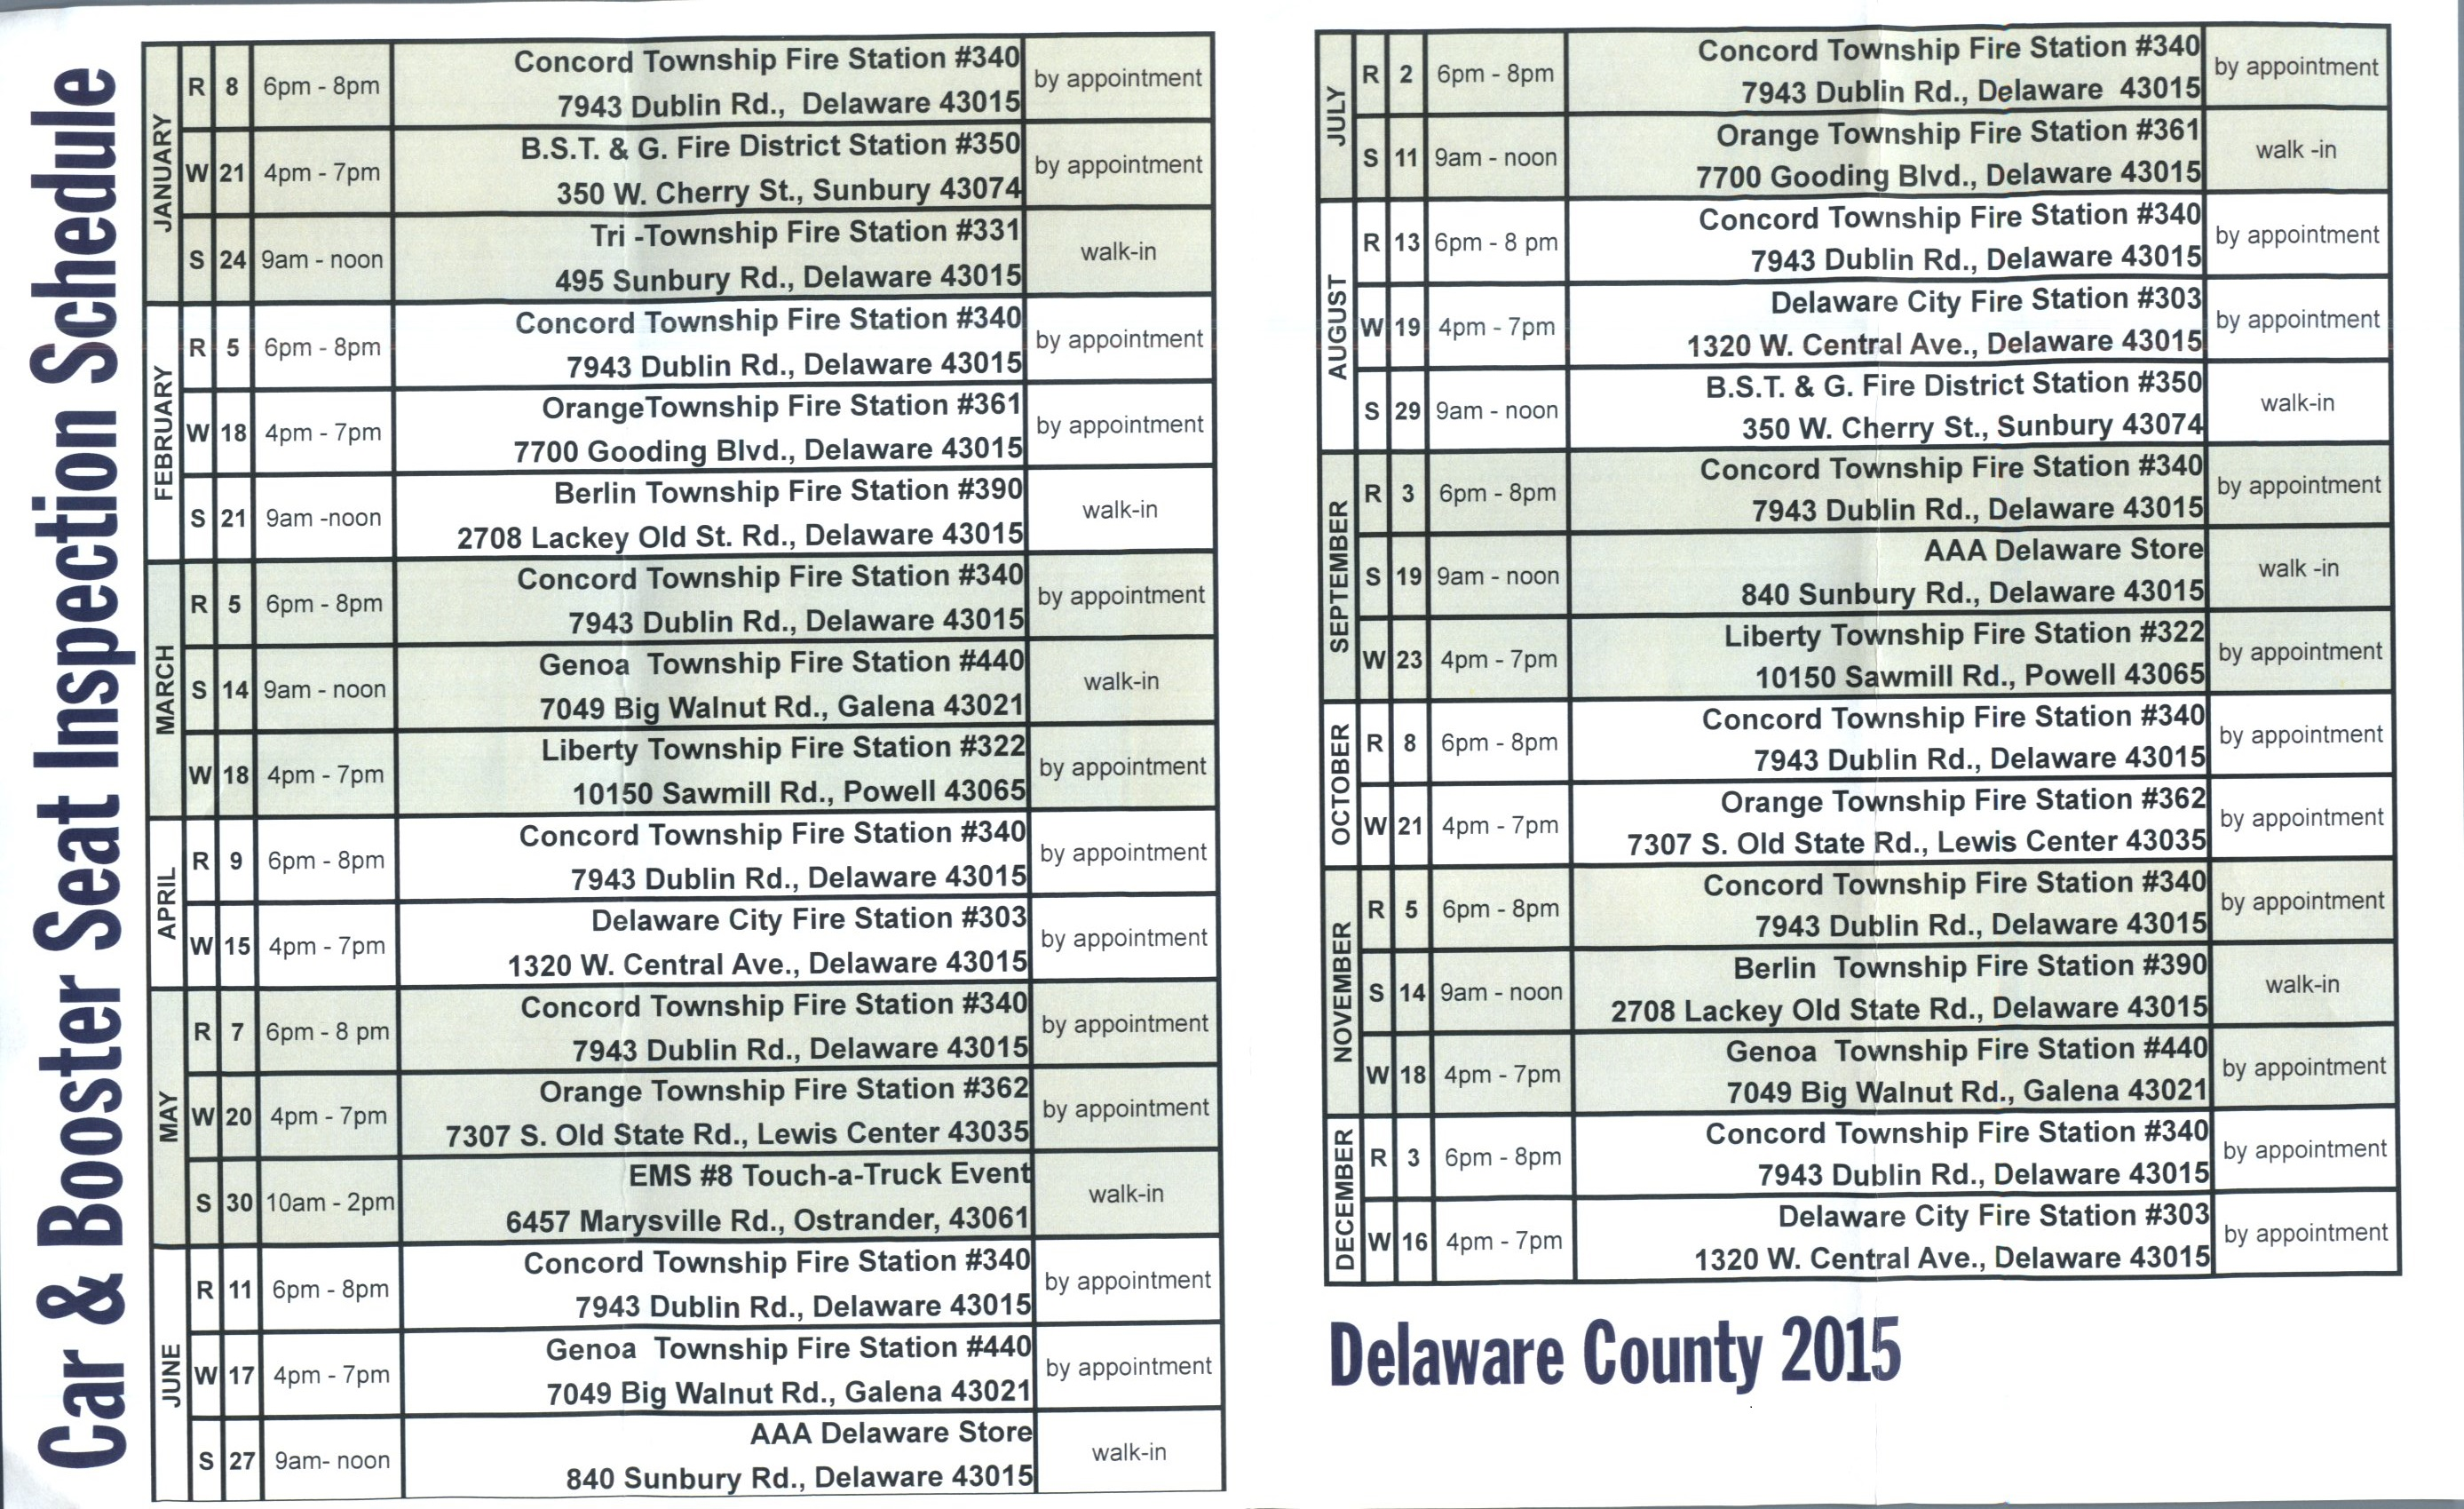 Delaware County Car Booster Seat Inspections 2015